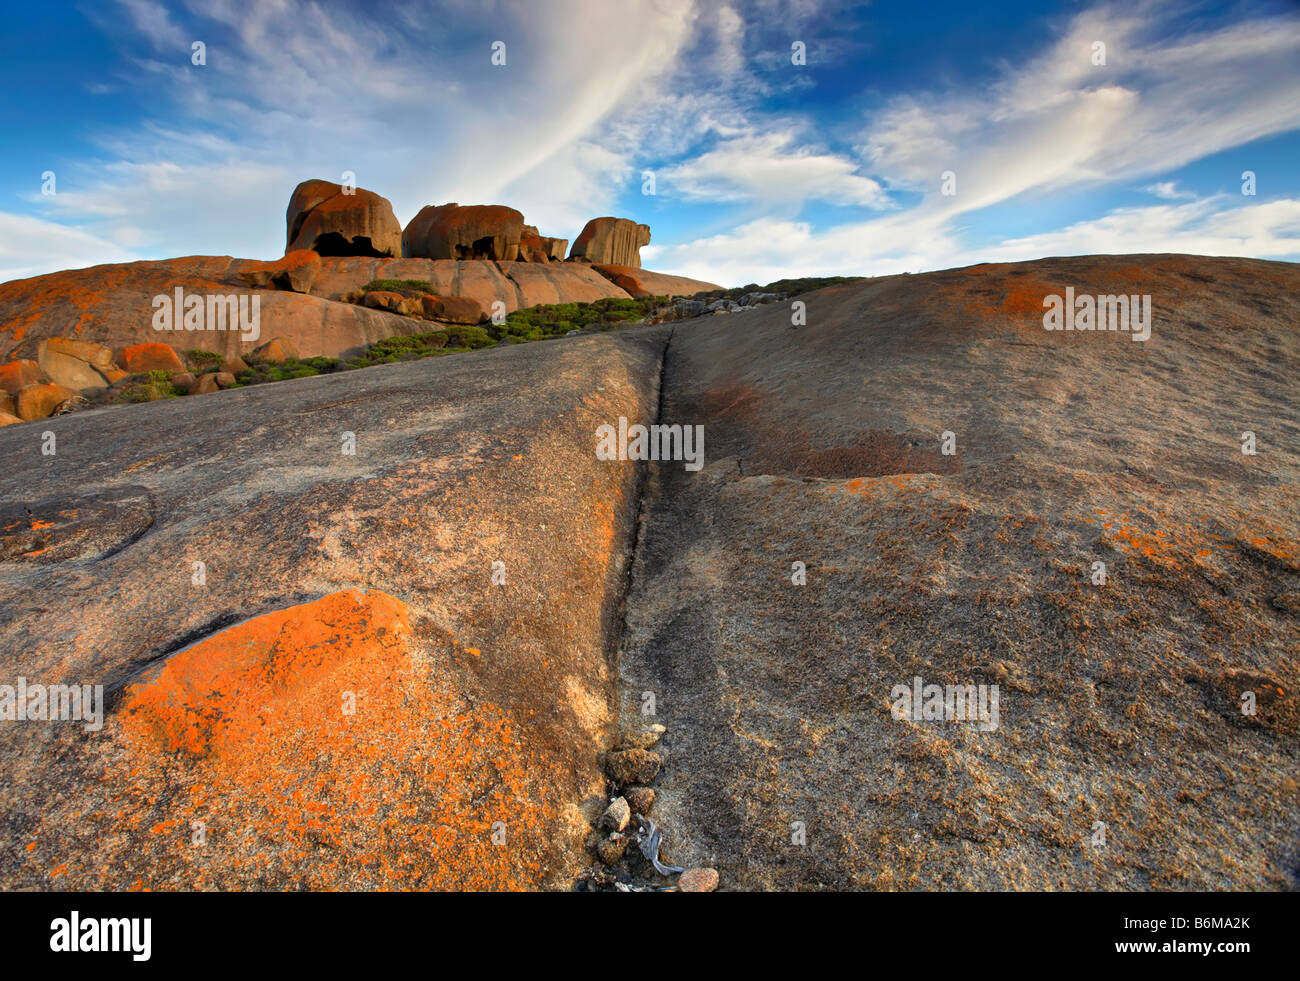 Remarkable Rocks - Stock Image